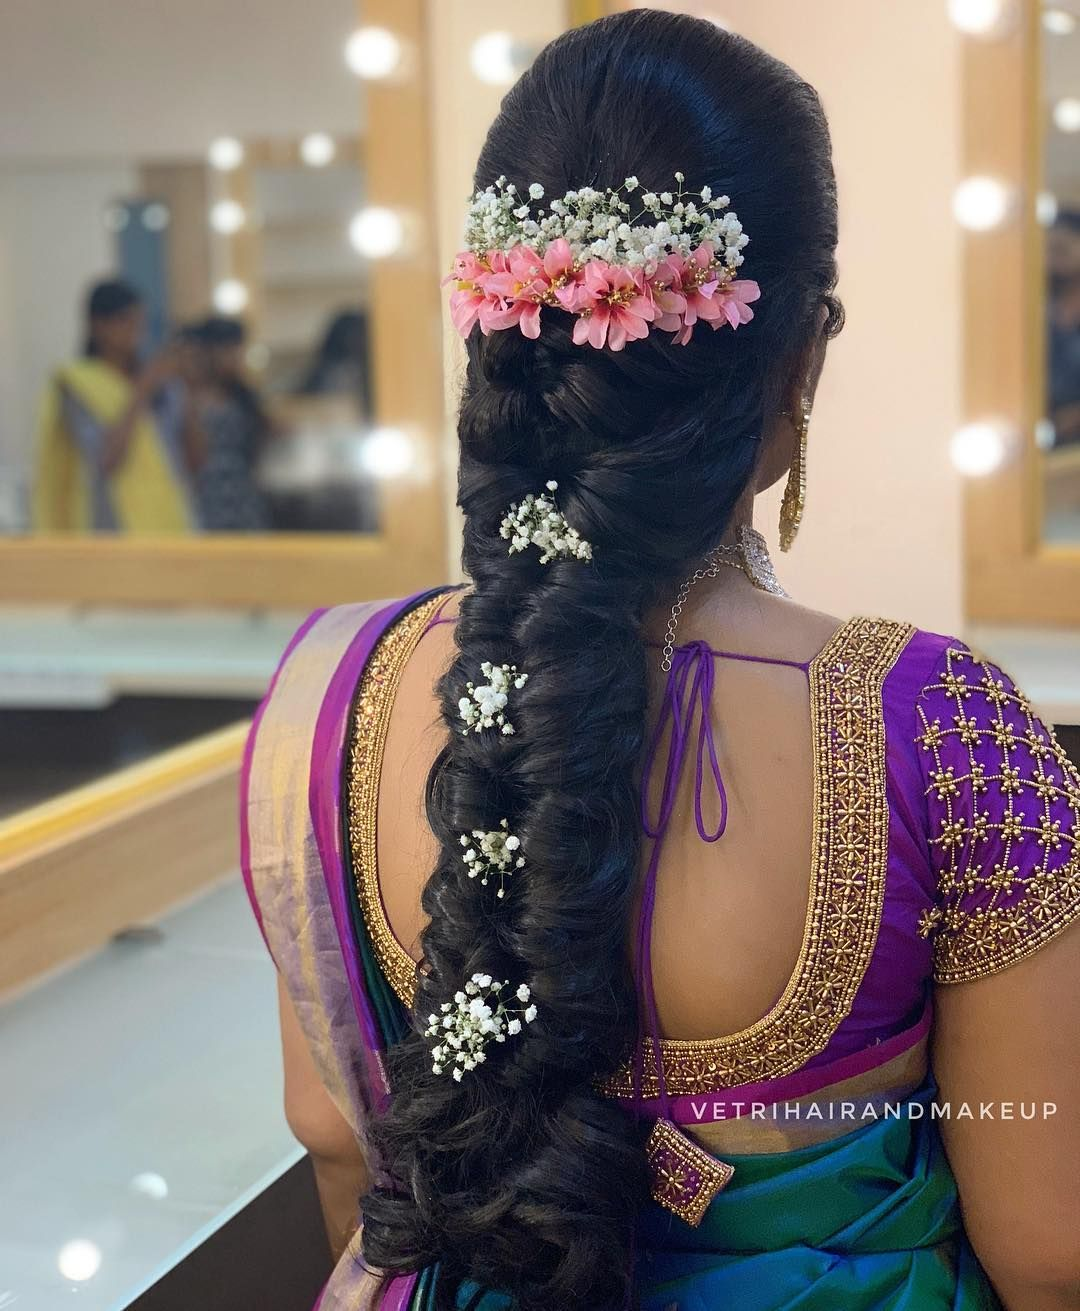 Image may contain: one or more people  Bridal hair buns, Indian